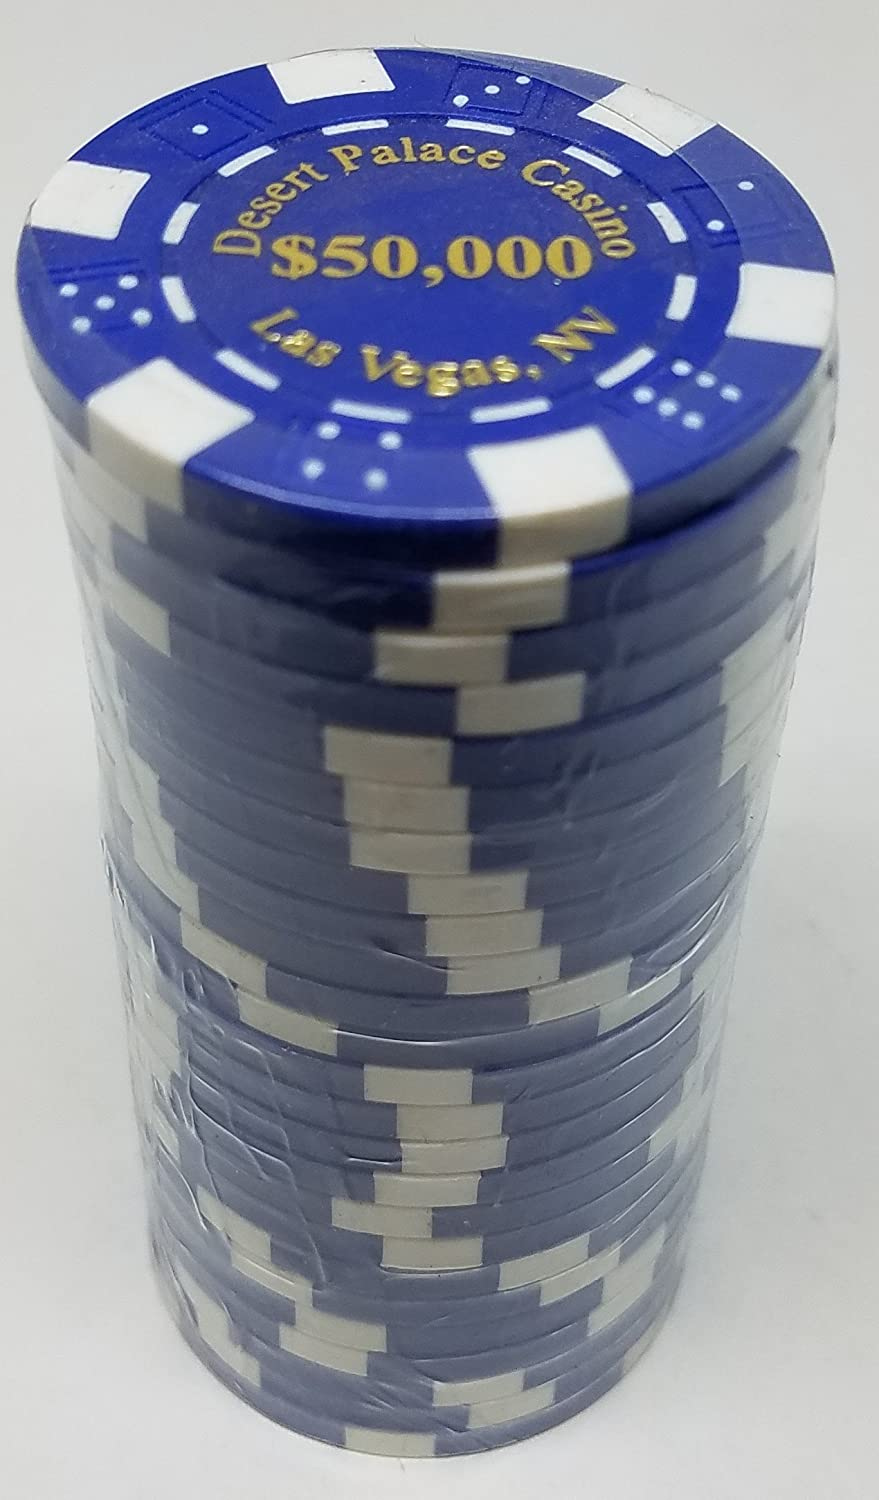 Roulette 1-3-2-6 system